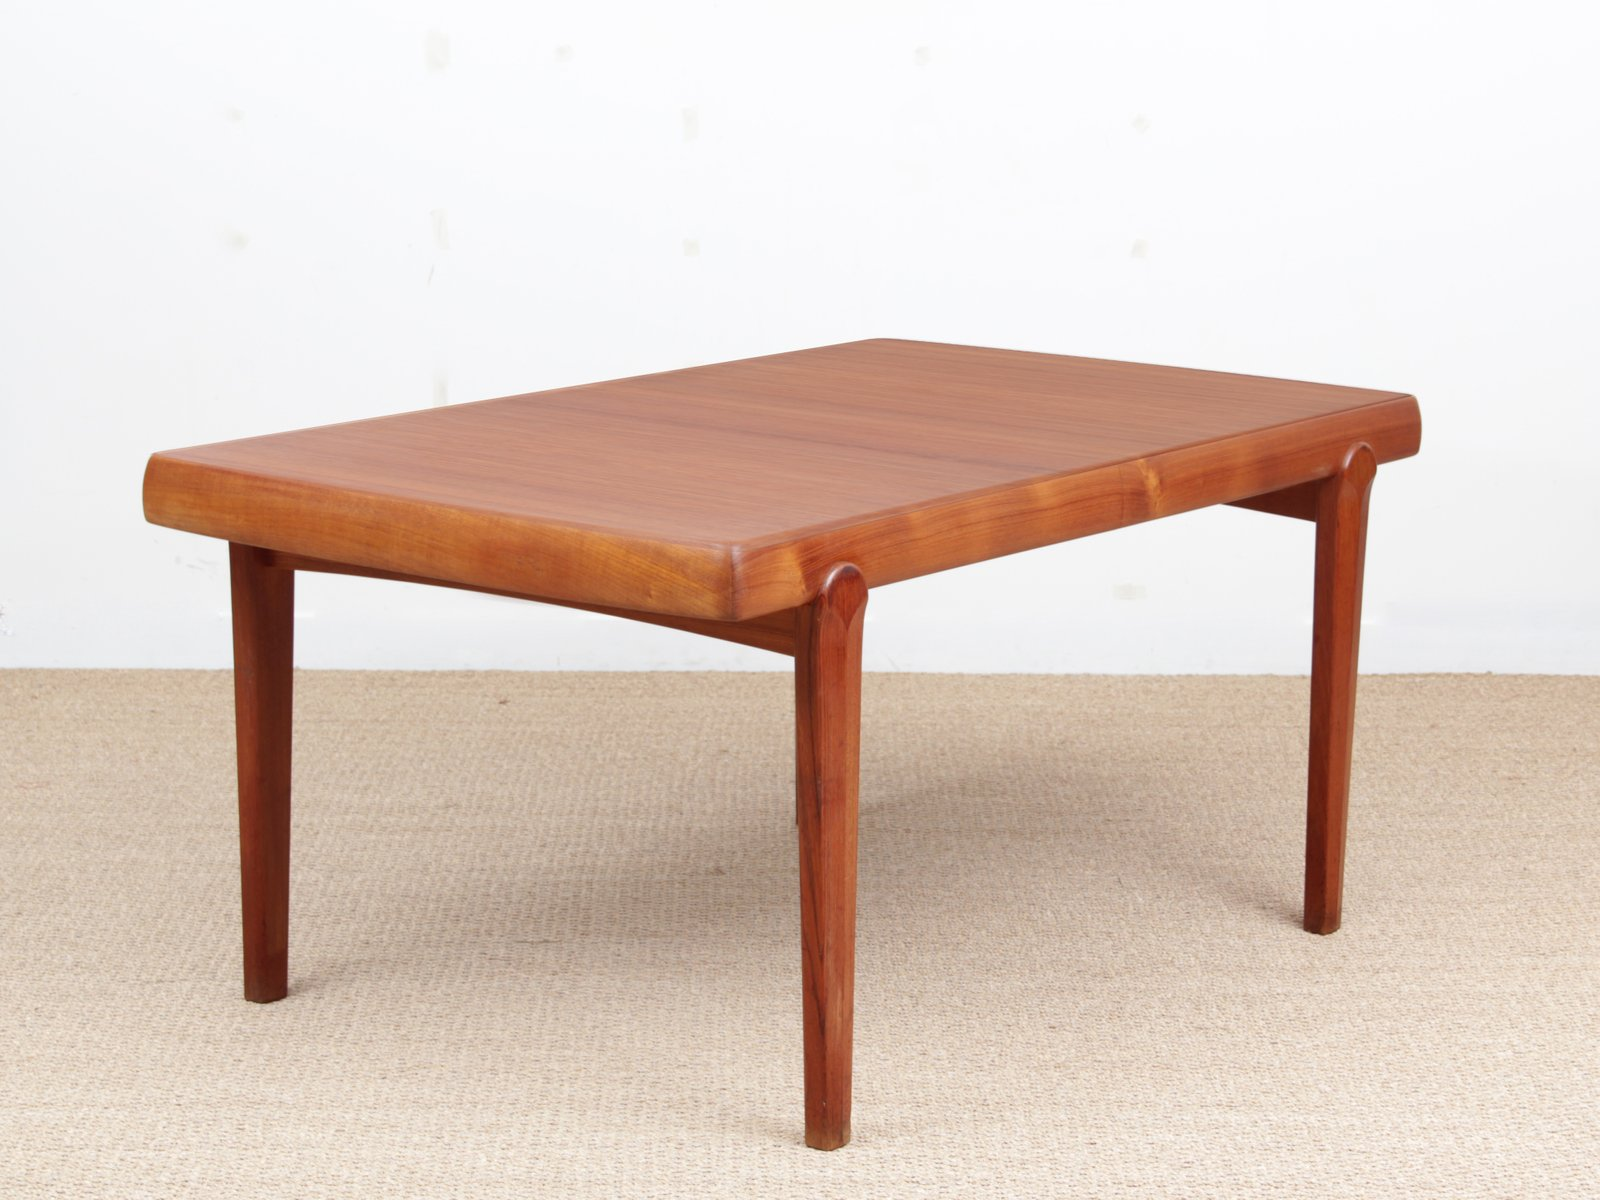 Scandinavian teak dining table from vamo s nderborg 1950s for sale at pamono - Dining table scandinavian ...